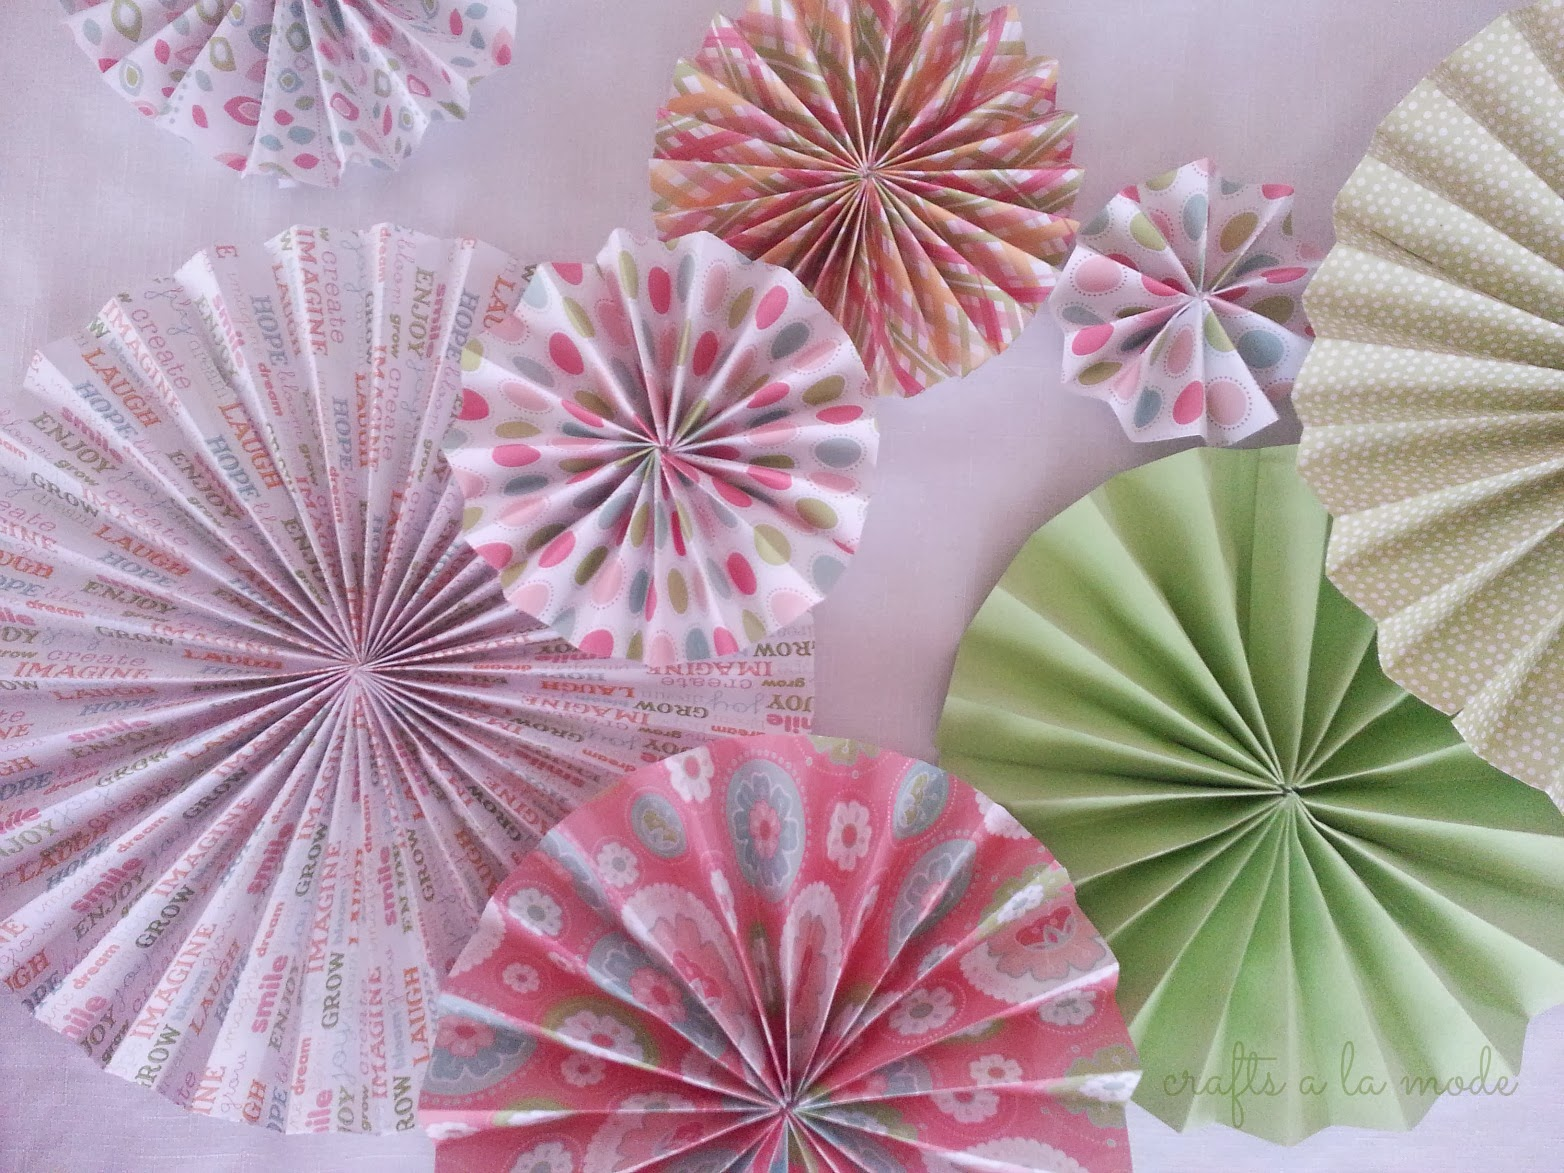 How to make paper rosettes crafts a la mode pretty pink and green folded paper rosettes here is how to make mightylinksfo Choice Image